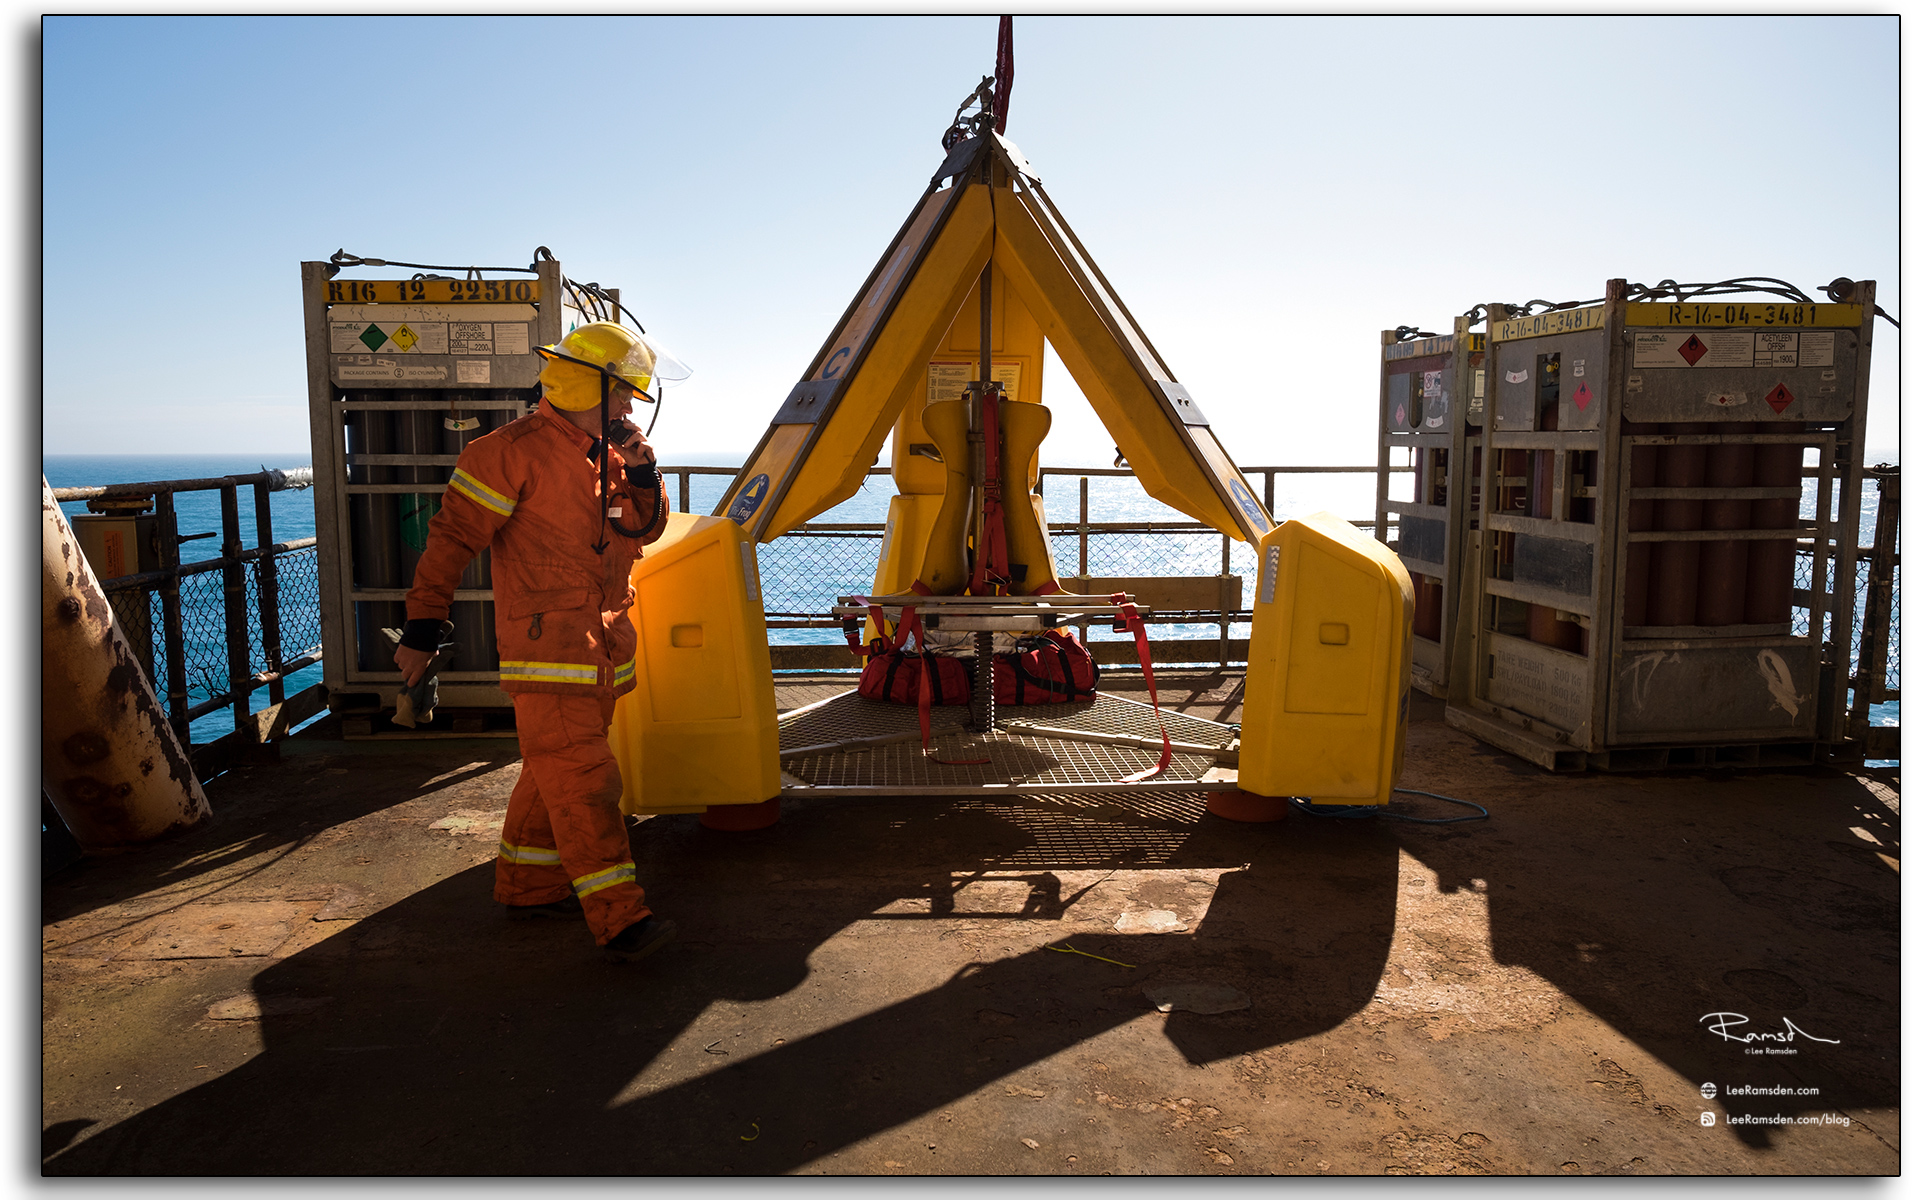 Blog, fireteam, emergency response, frog personnel transfer, north sea, photo by Lee Ramsden